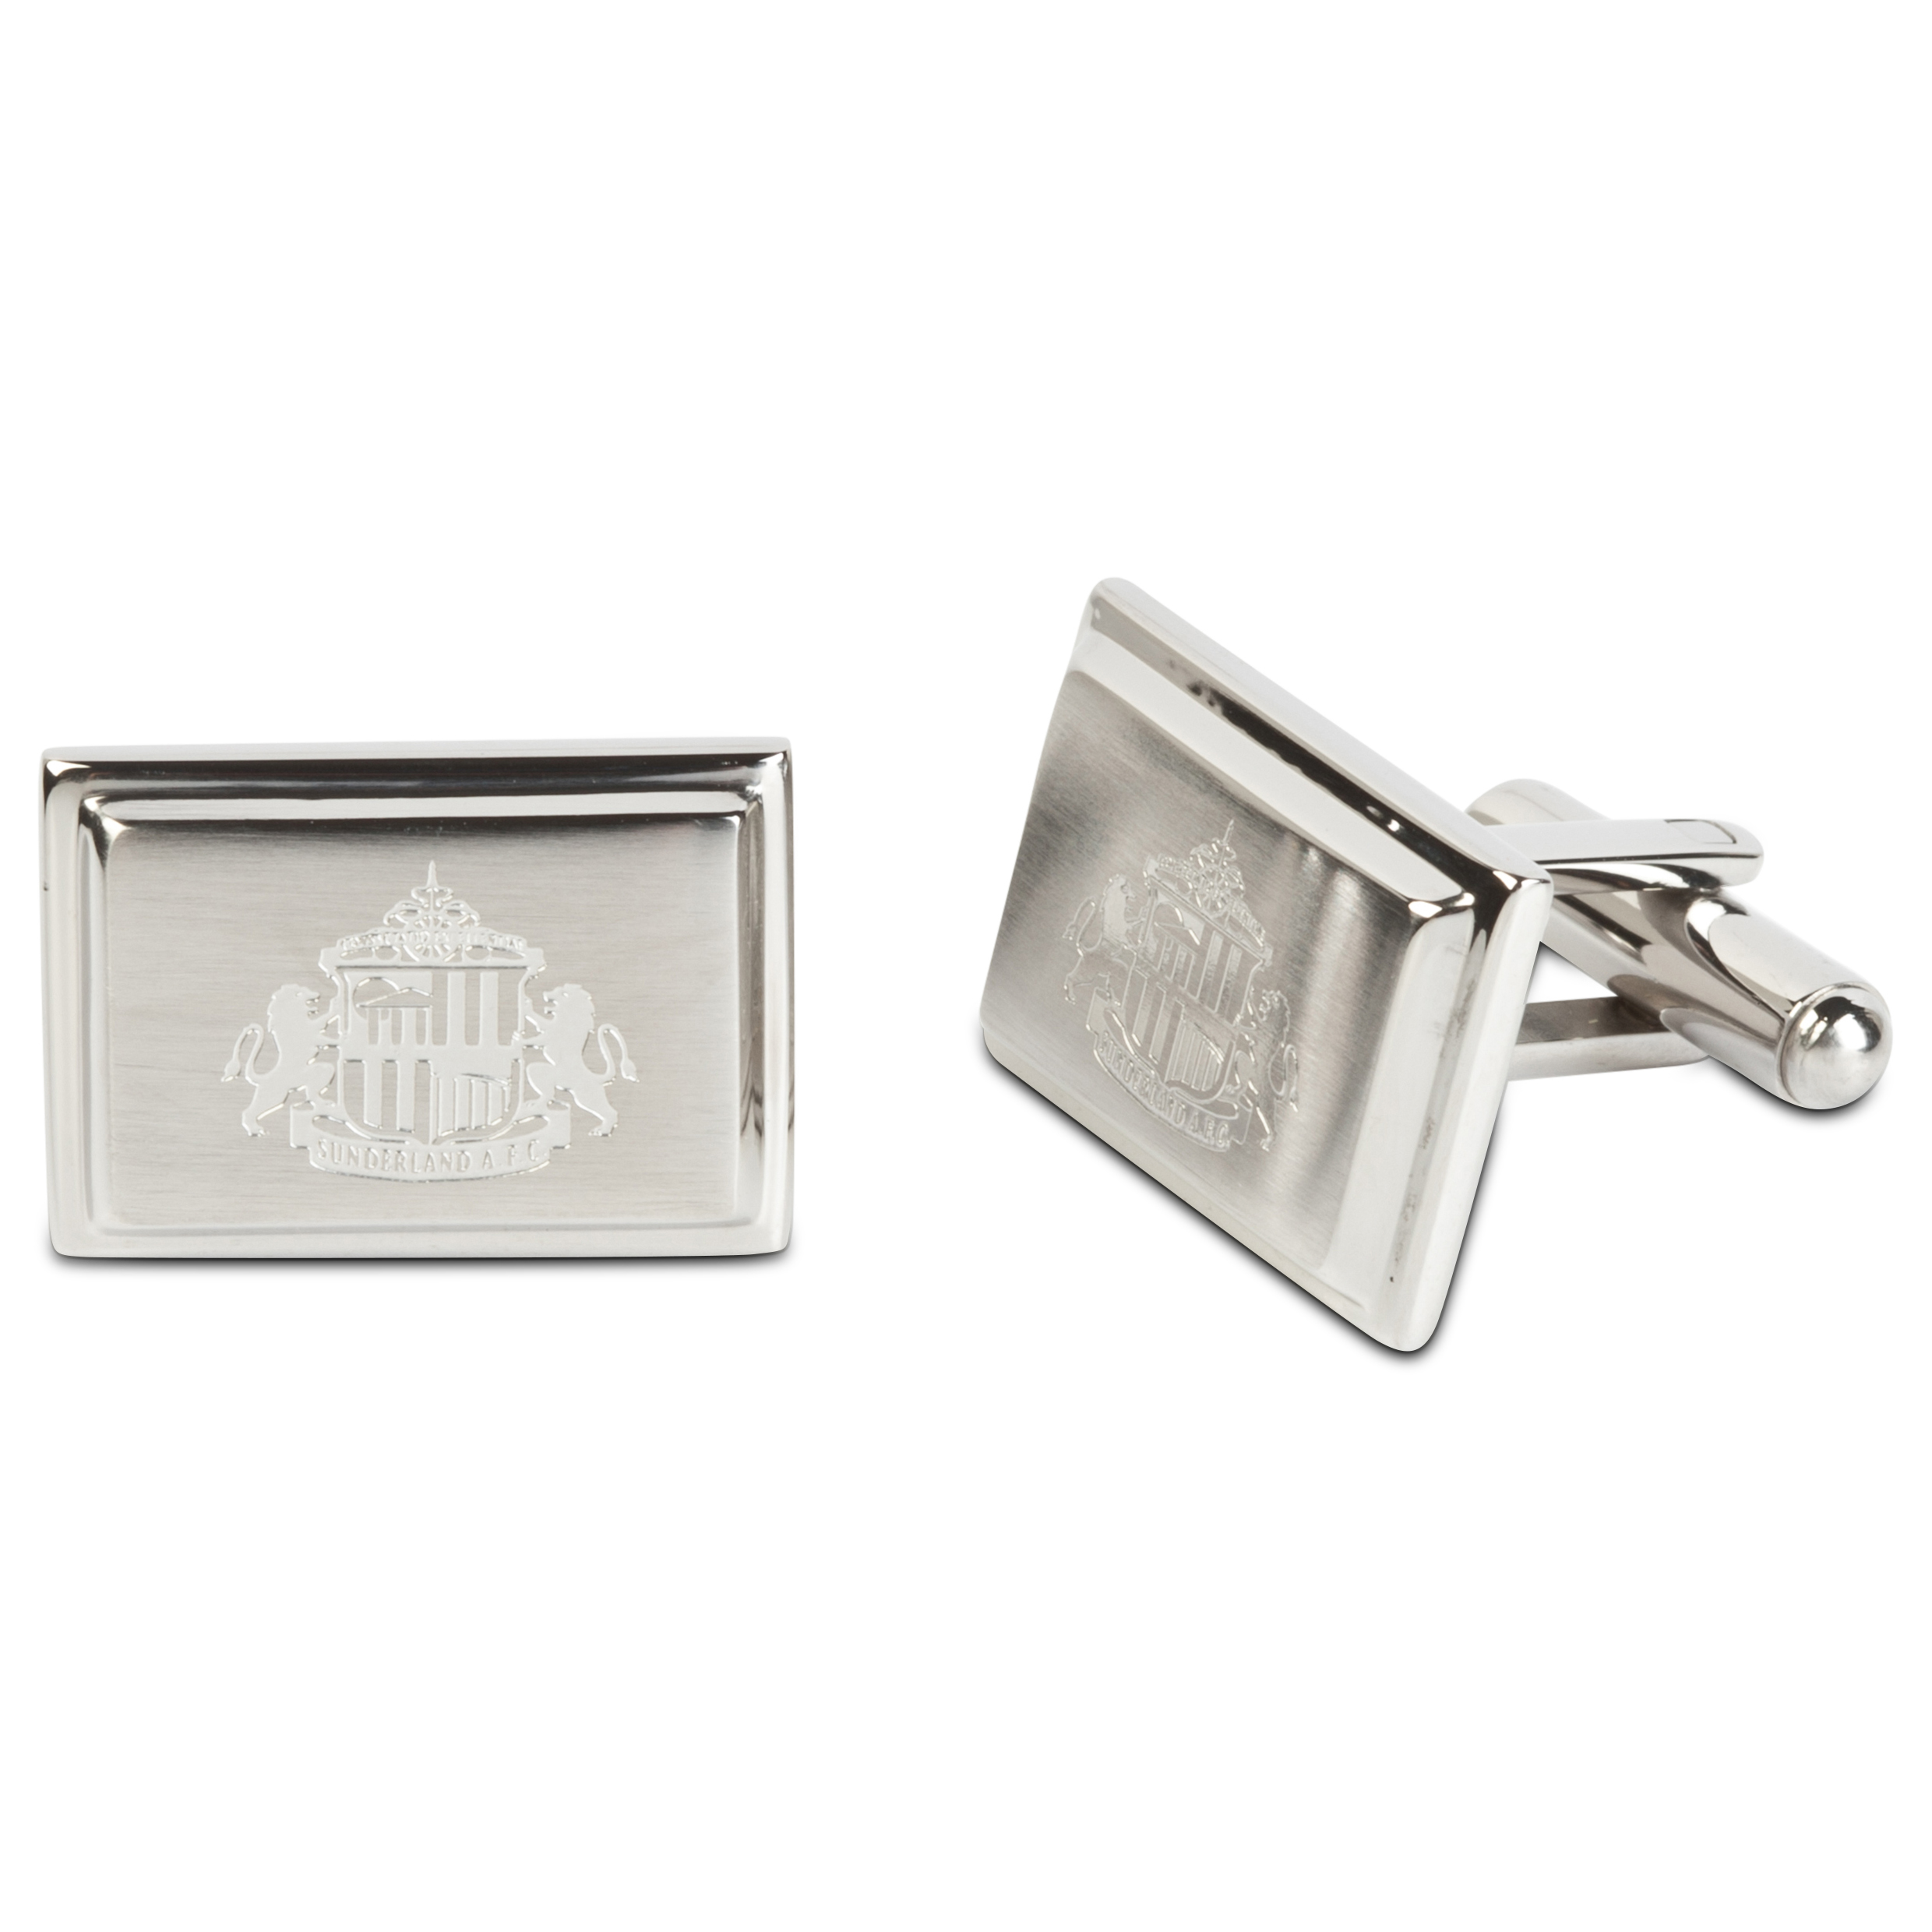 Sunderland Stainless Steel Rectangular Cufflinks